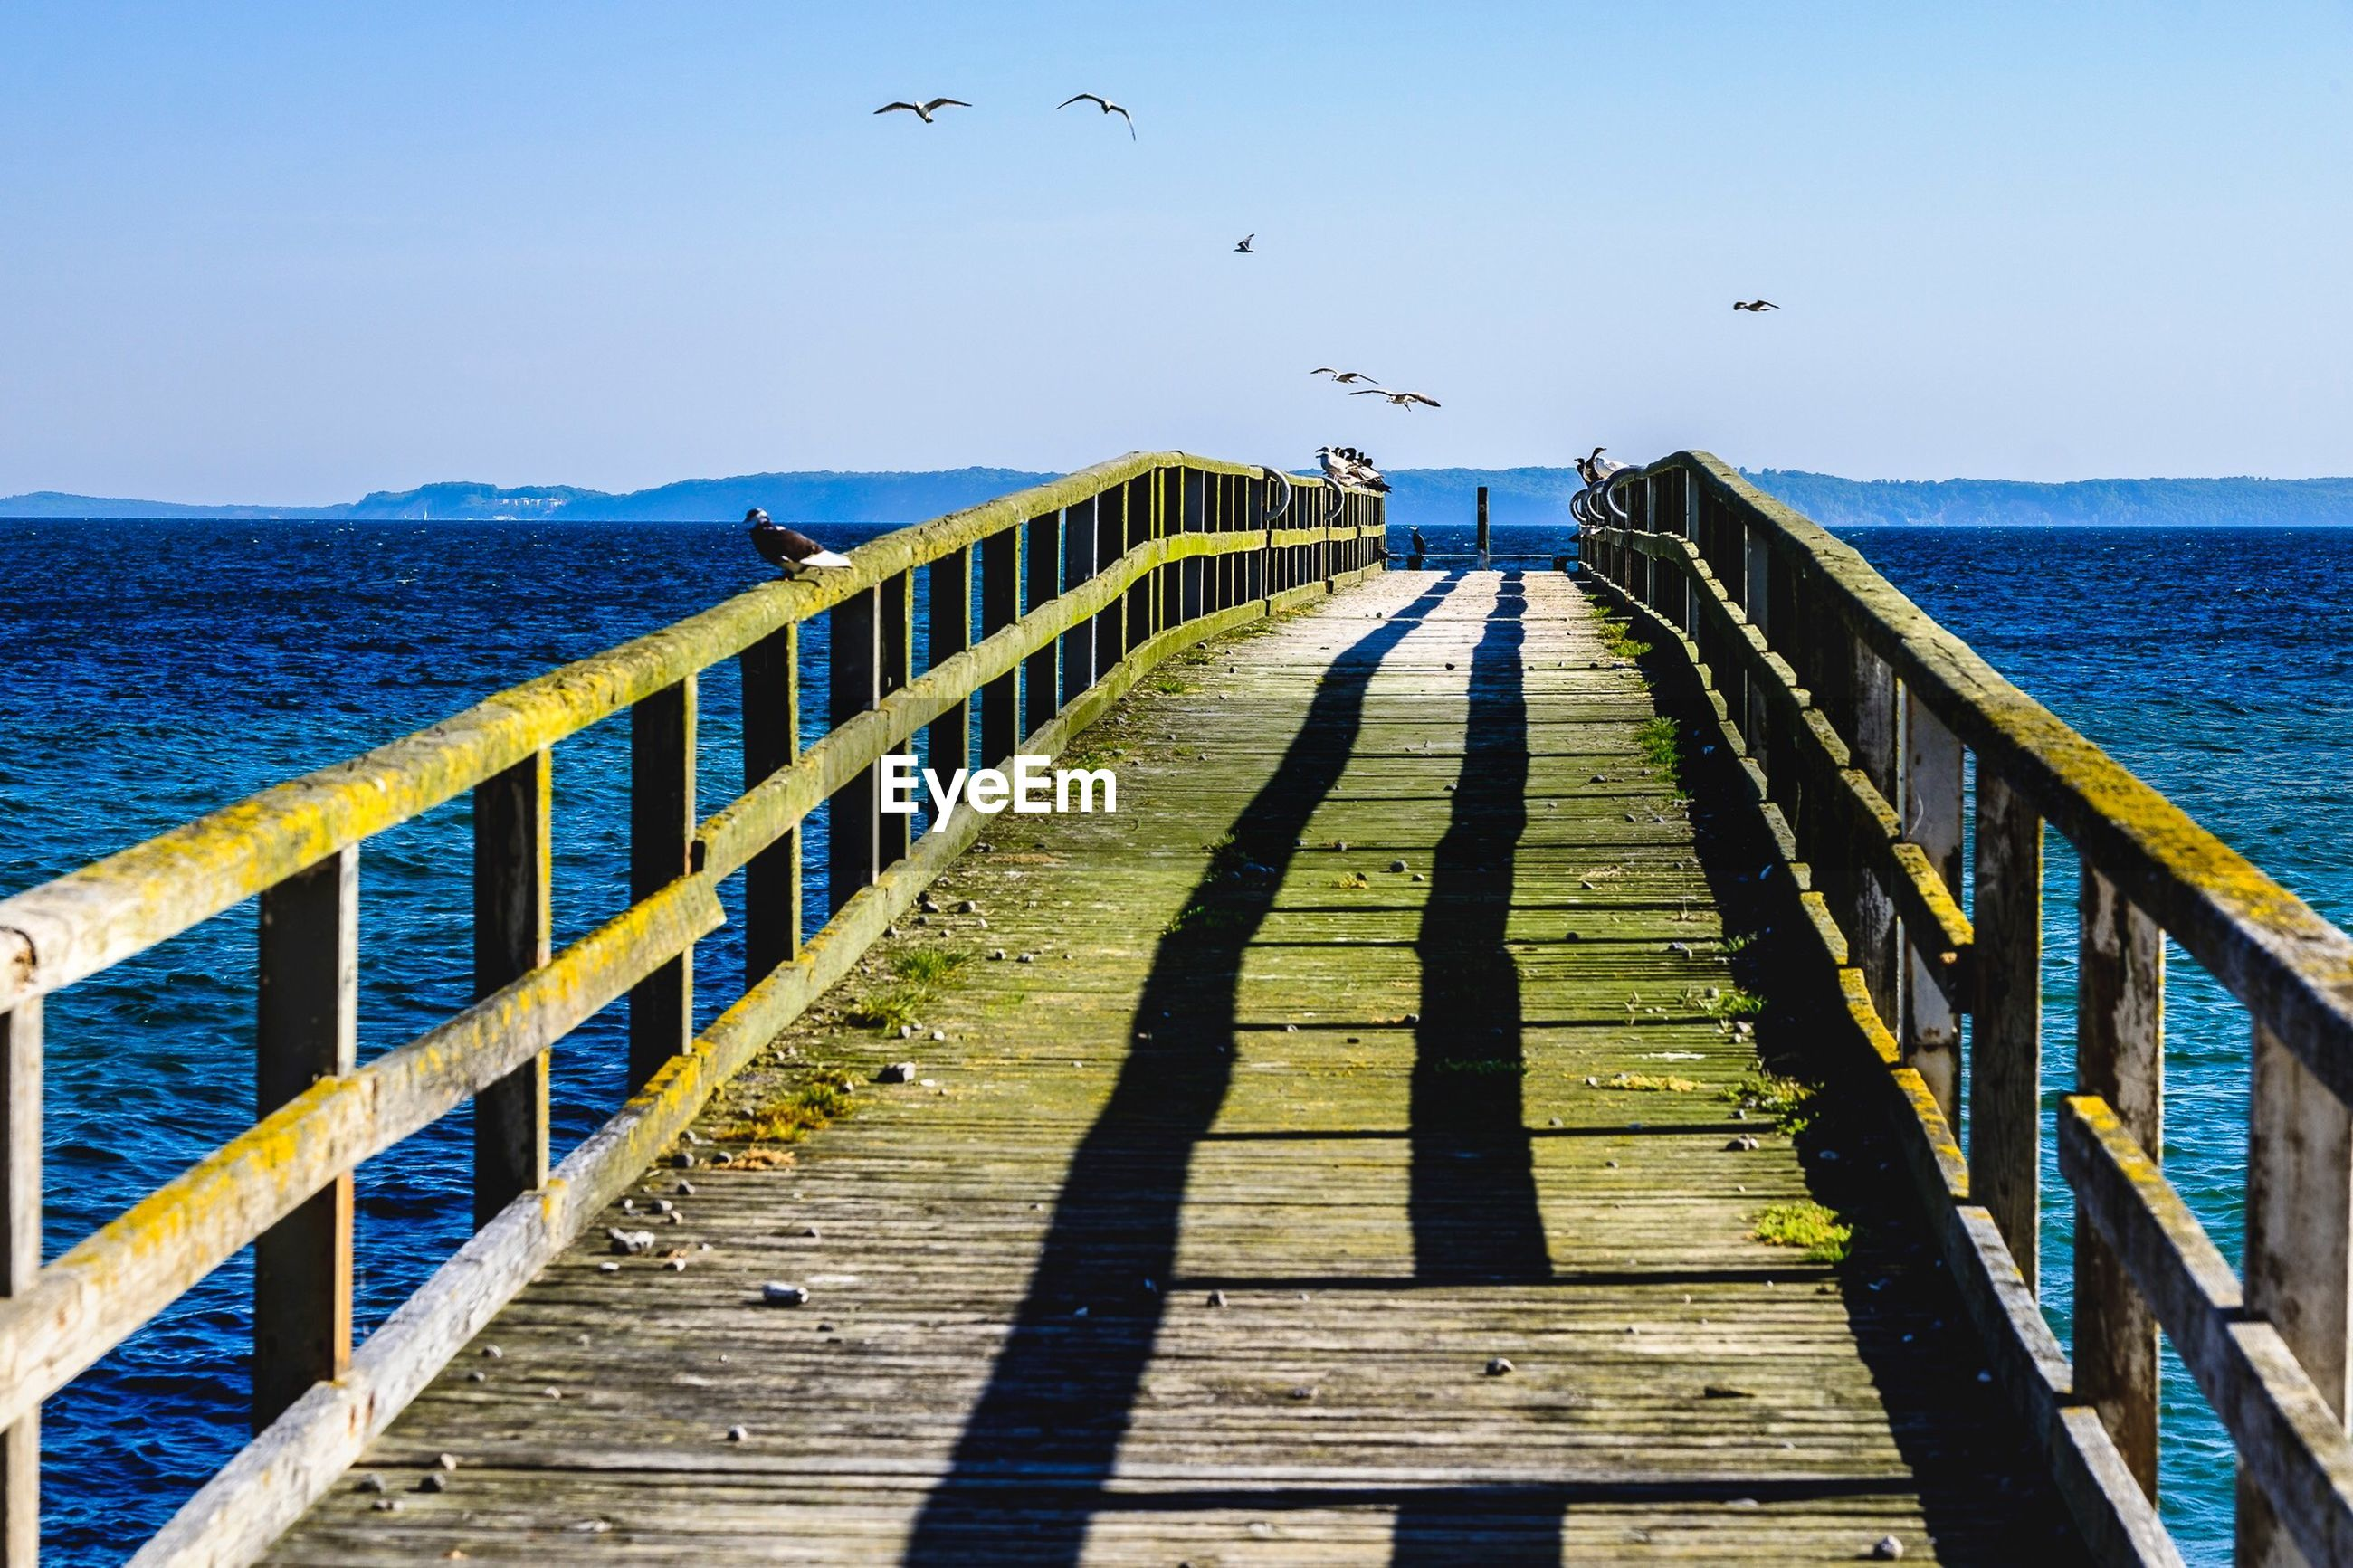 Birds flying over pier and sea